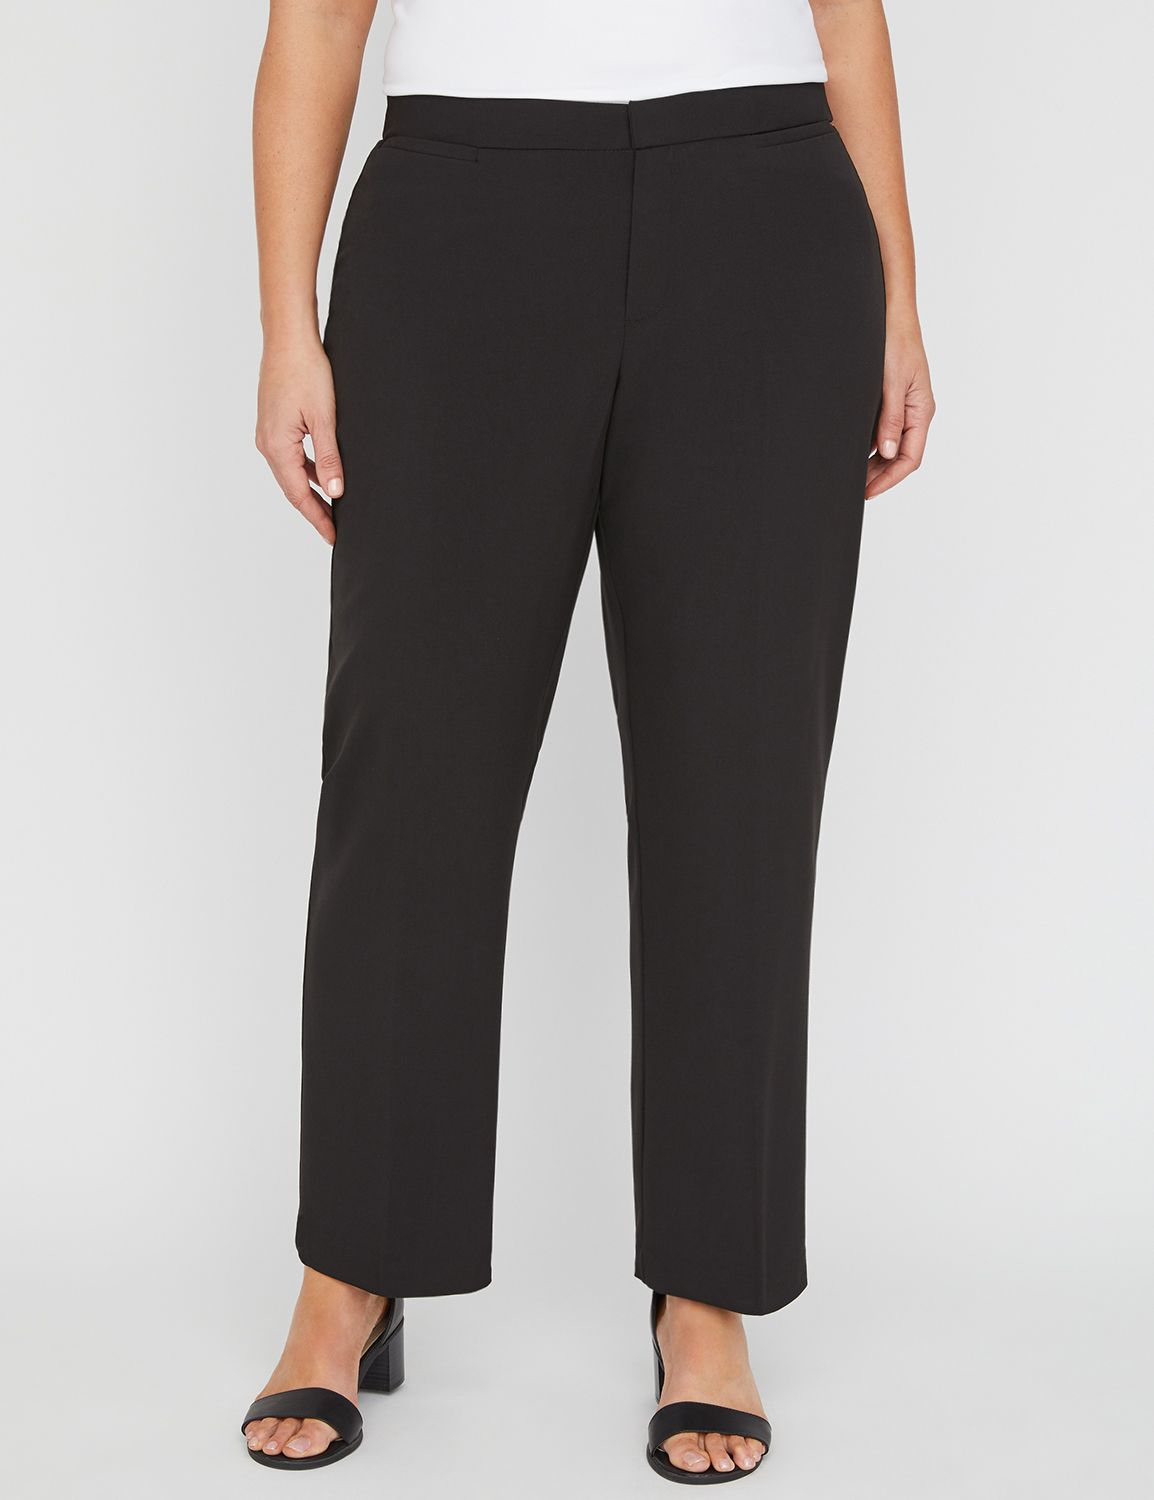 Right Fit Pant (Moderately Curvy) Right Fit Pant (Moderately Curvy) MP-300009887